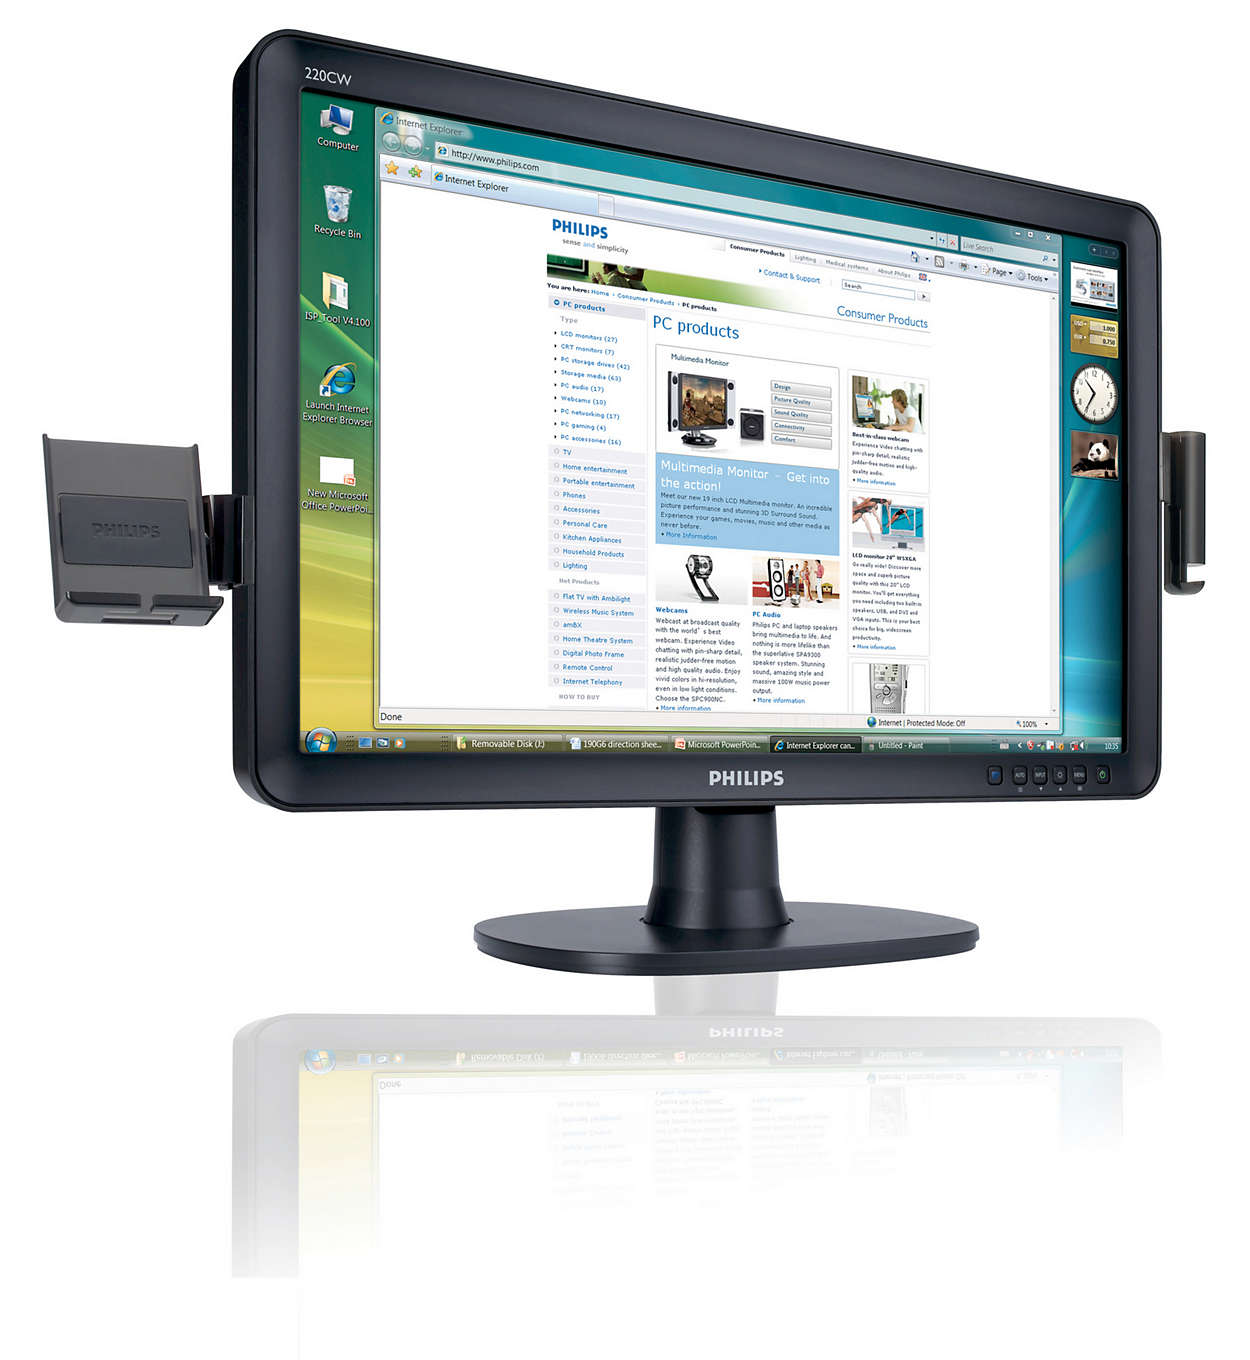 The first ever SmartAccessory monitor